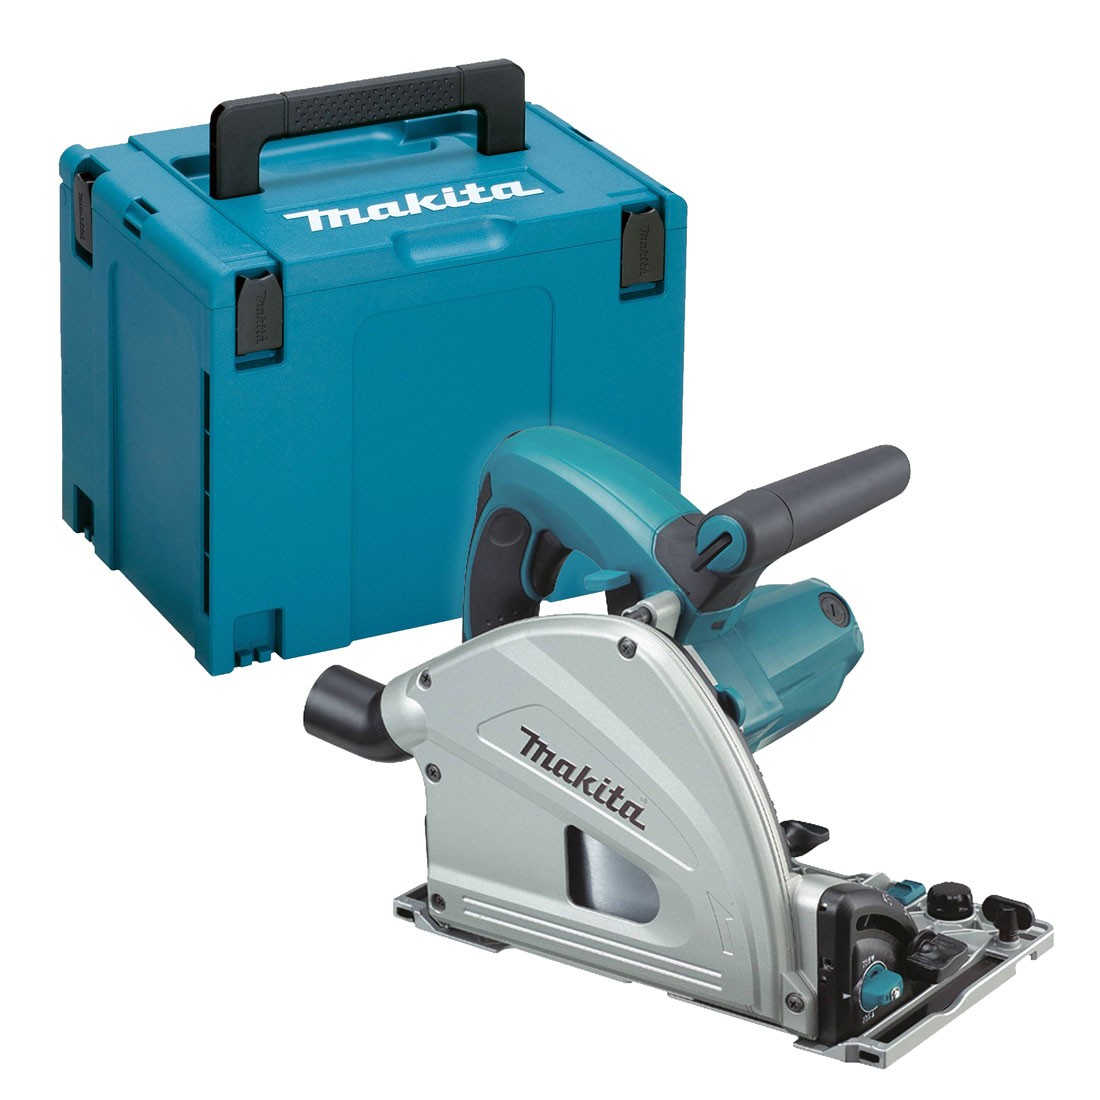 Makita SP6000J 240V 165mm Plunge Cut Saw - Depth Stopper for Splinter-Free Cutting